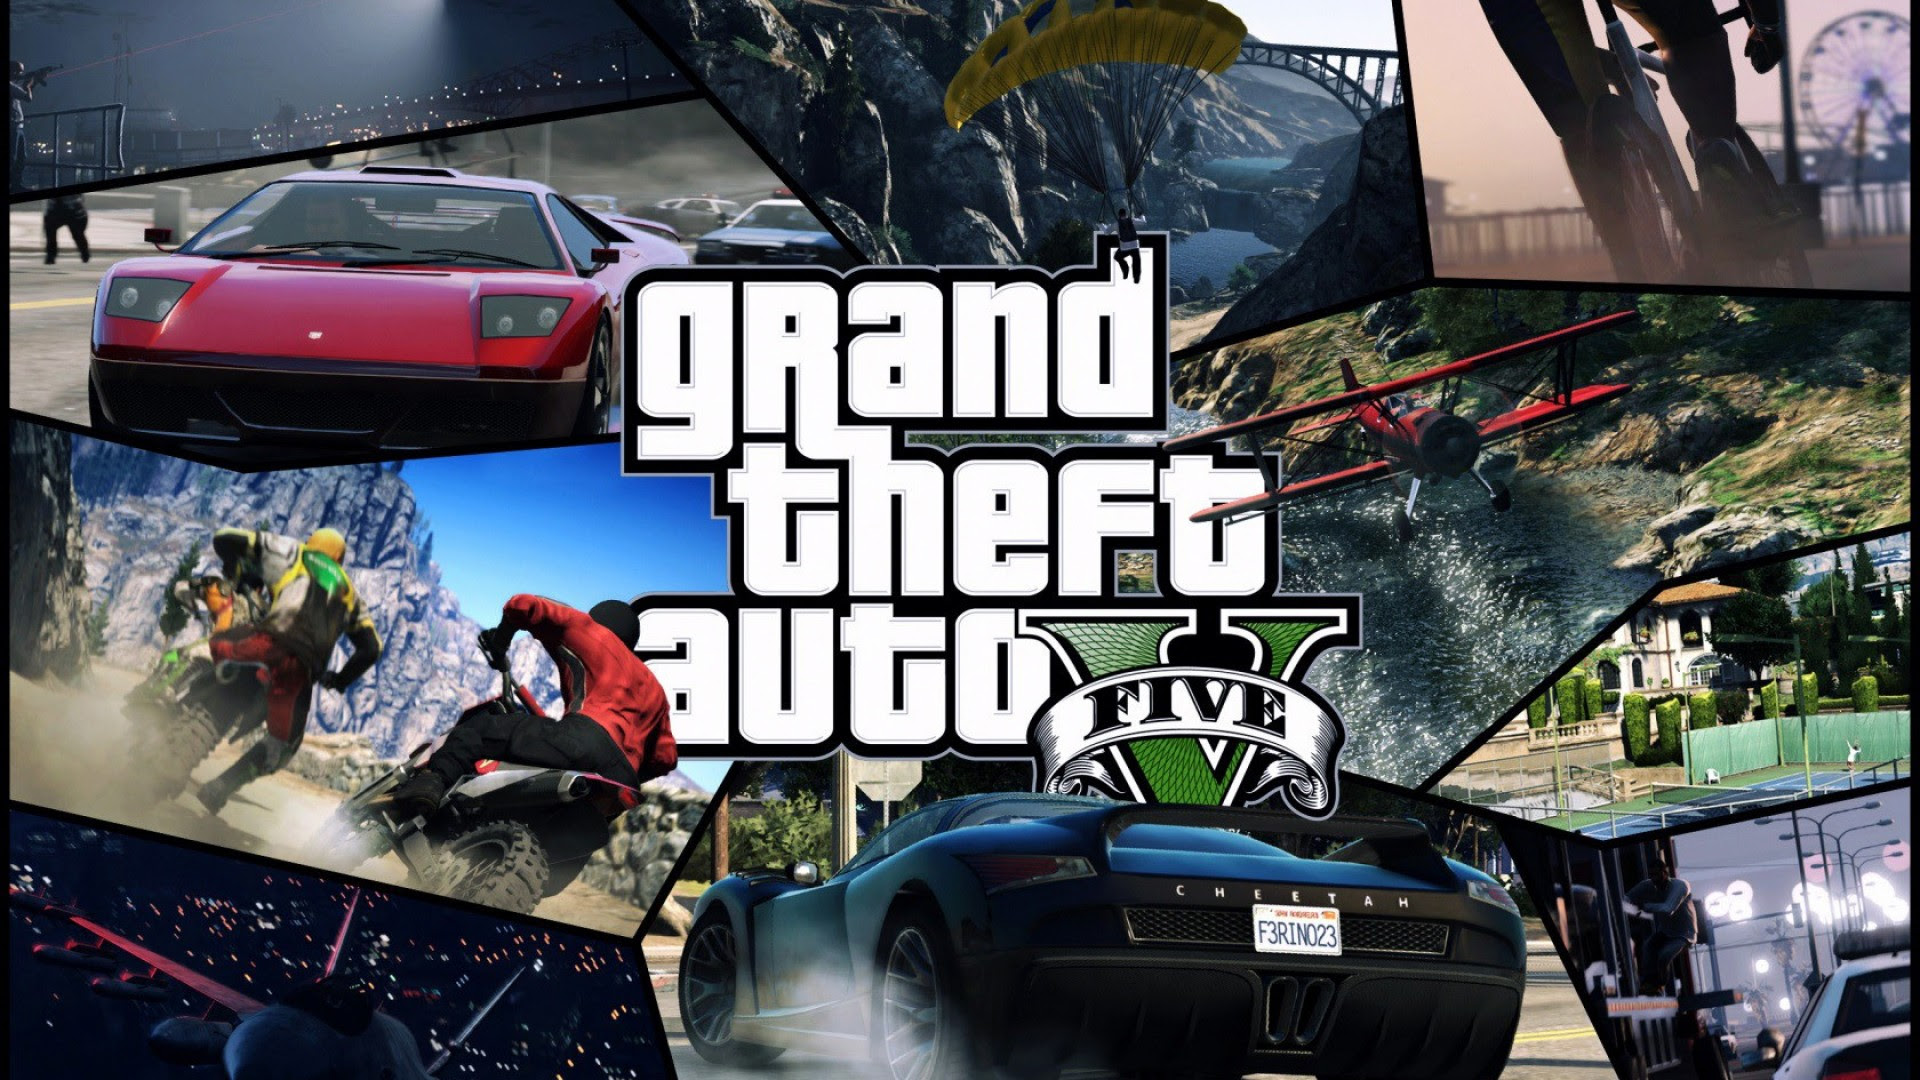 Grand Theft Auto V 7 Hd Wallpaper Listtoday